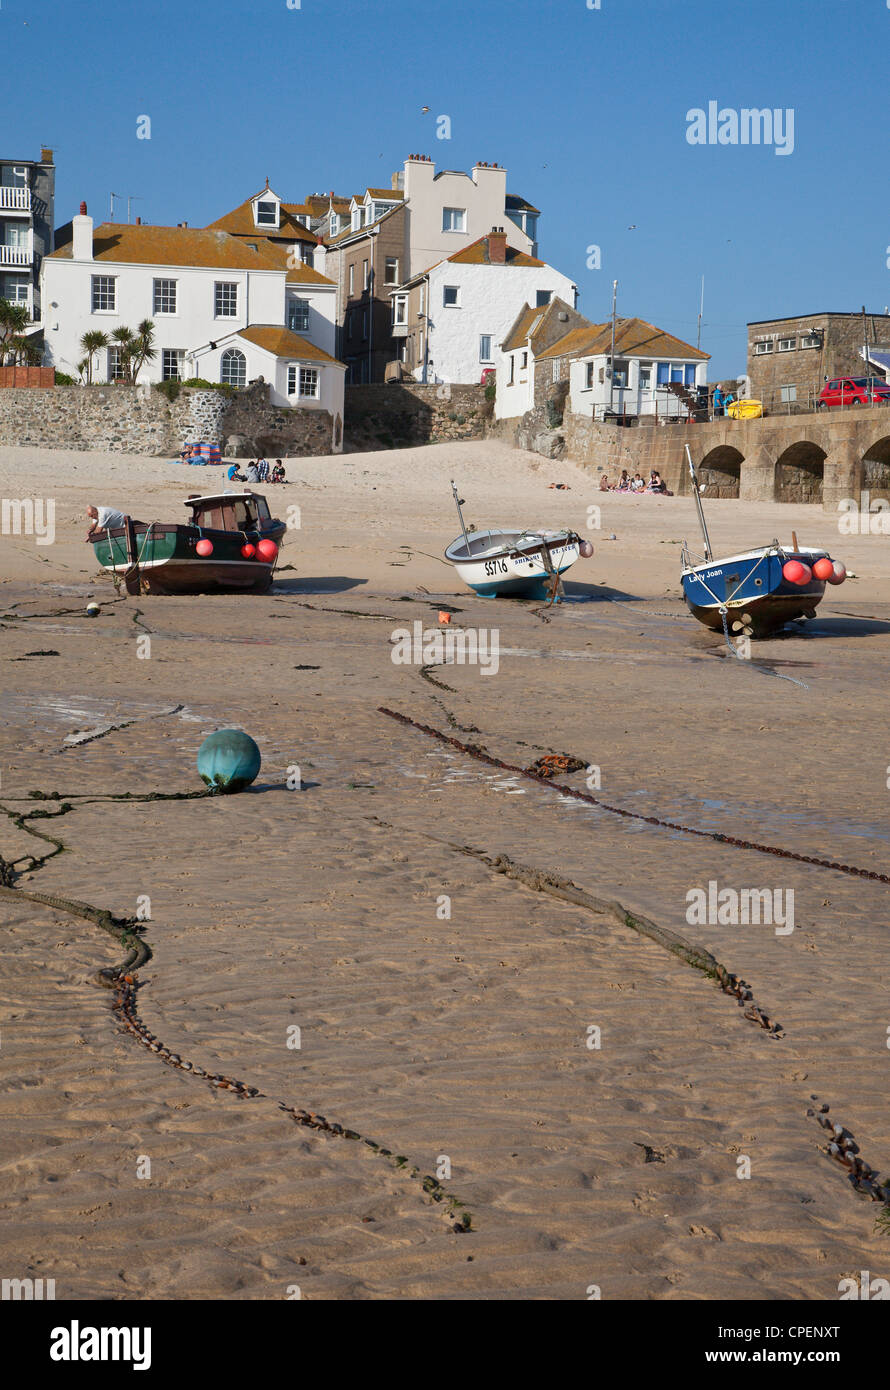 St Ives harbour and beach at low tide. Cornwall, England, UK - Stock Image